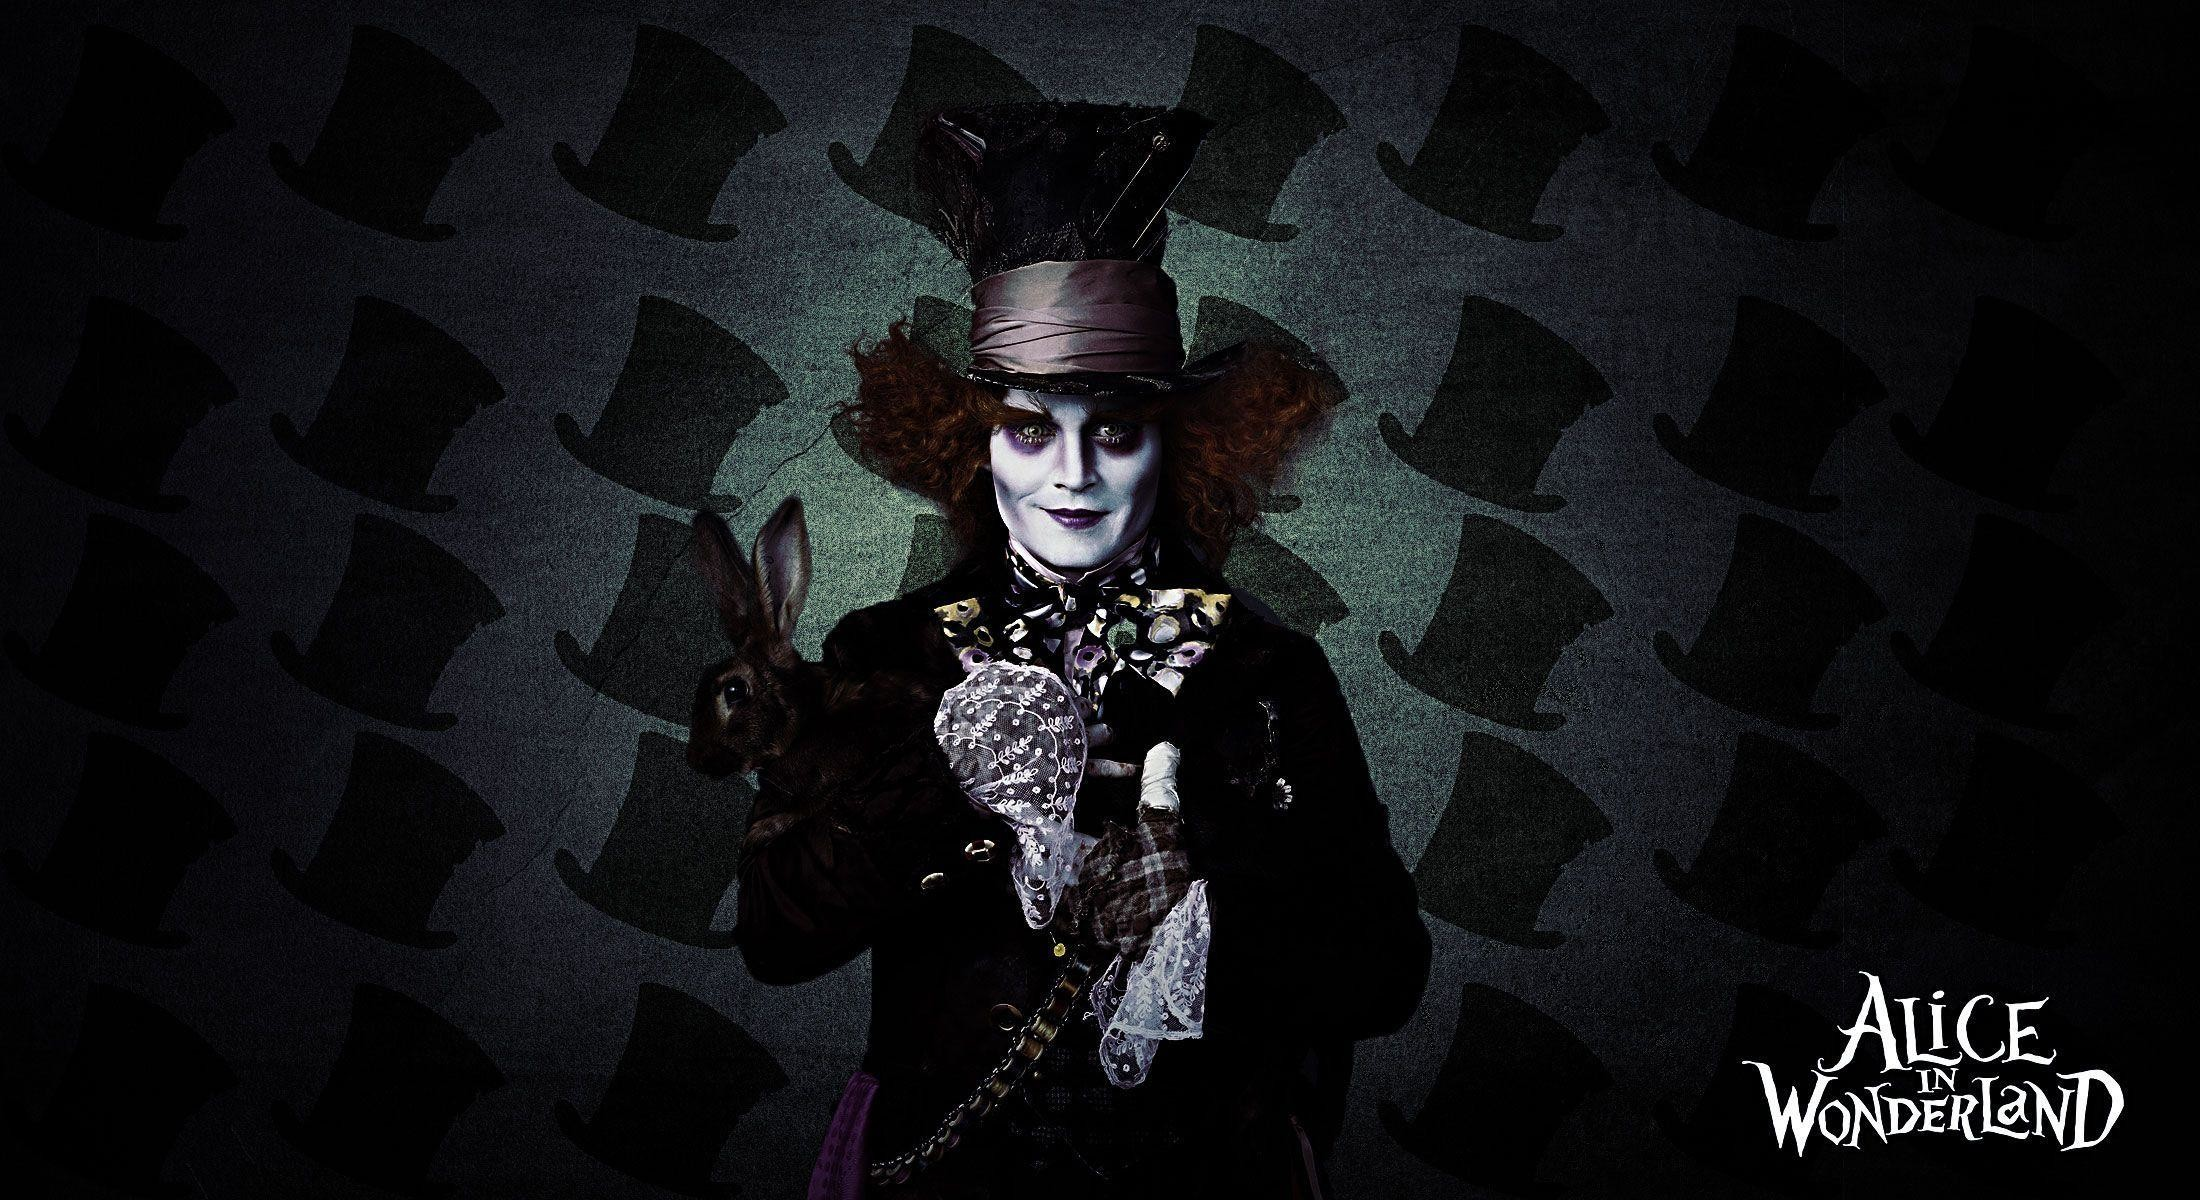 2200x1200 Free Wallpapers - Mad Hatter Alice In Wonderland wallpaper